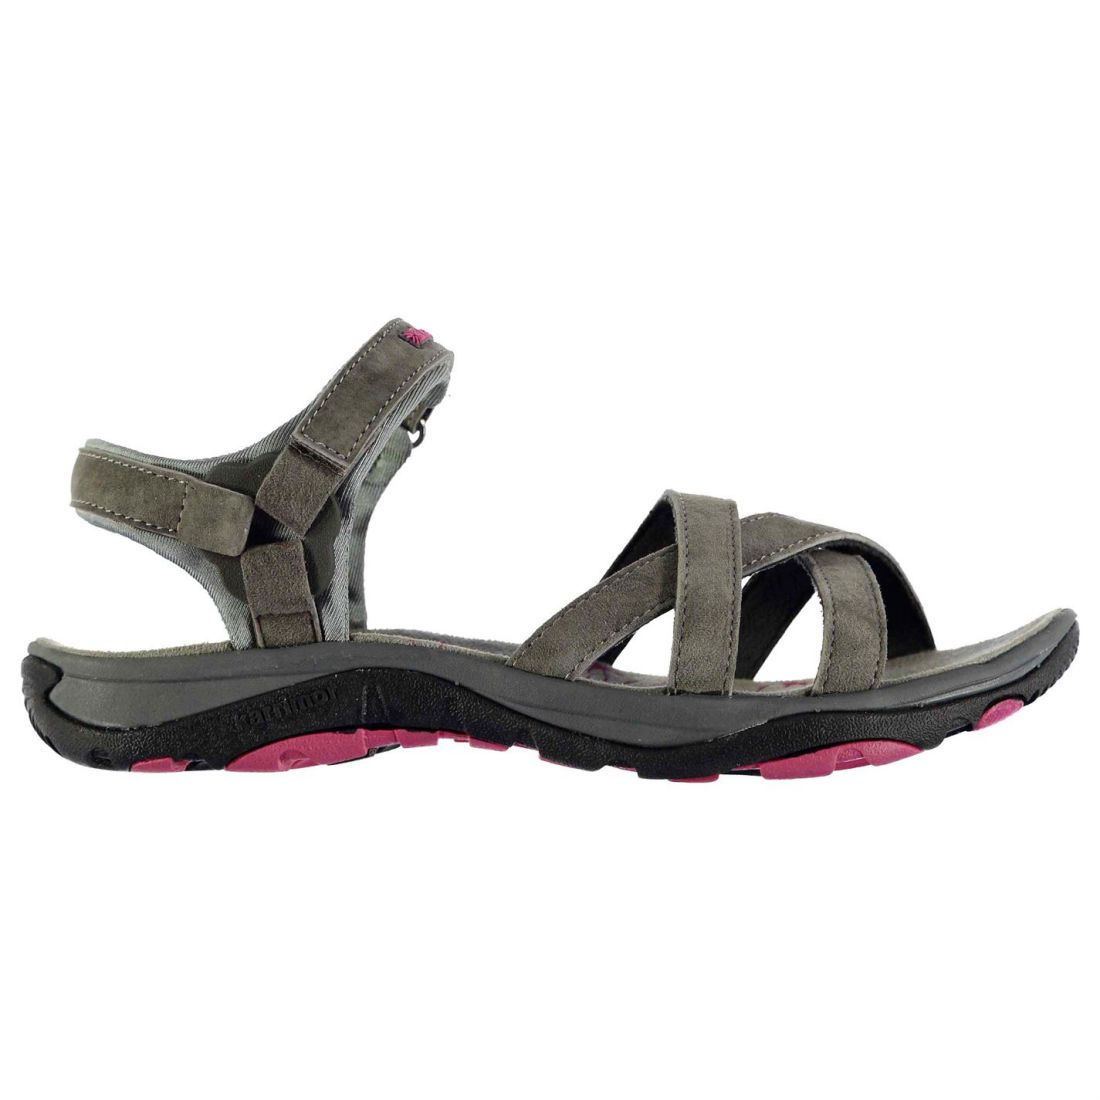 1809f2ab12df Details about Karrimor Ladies Salina Leather Walking Sandals Shoes Footwear